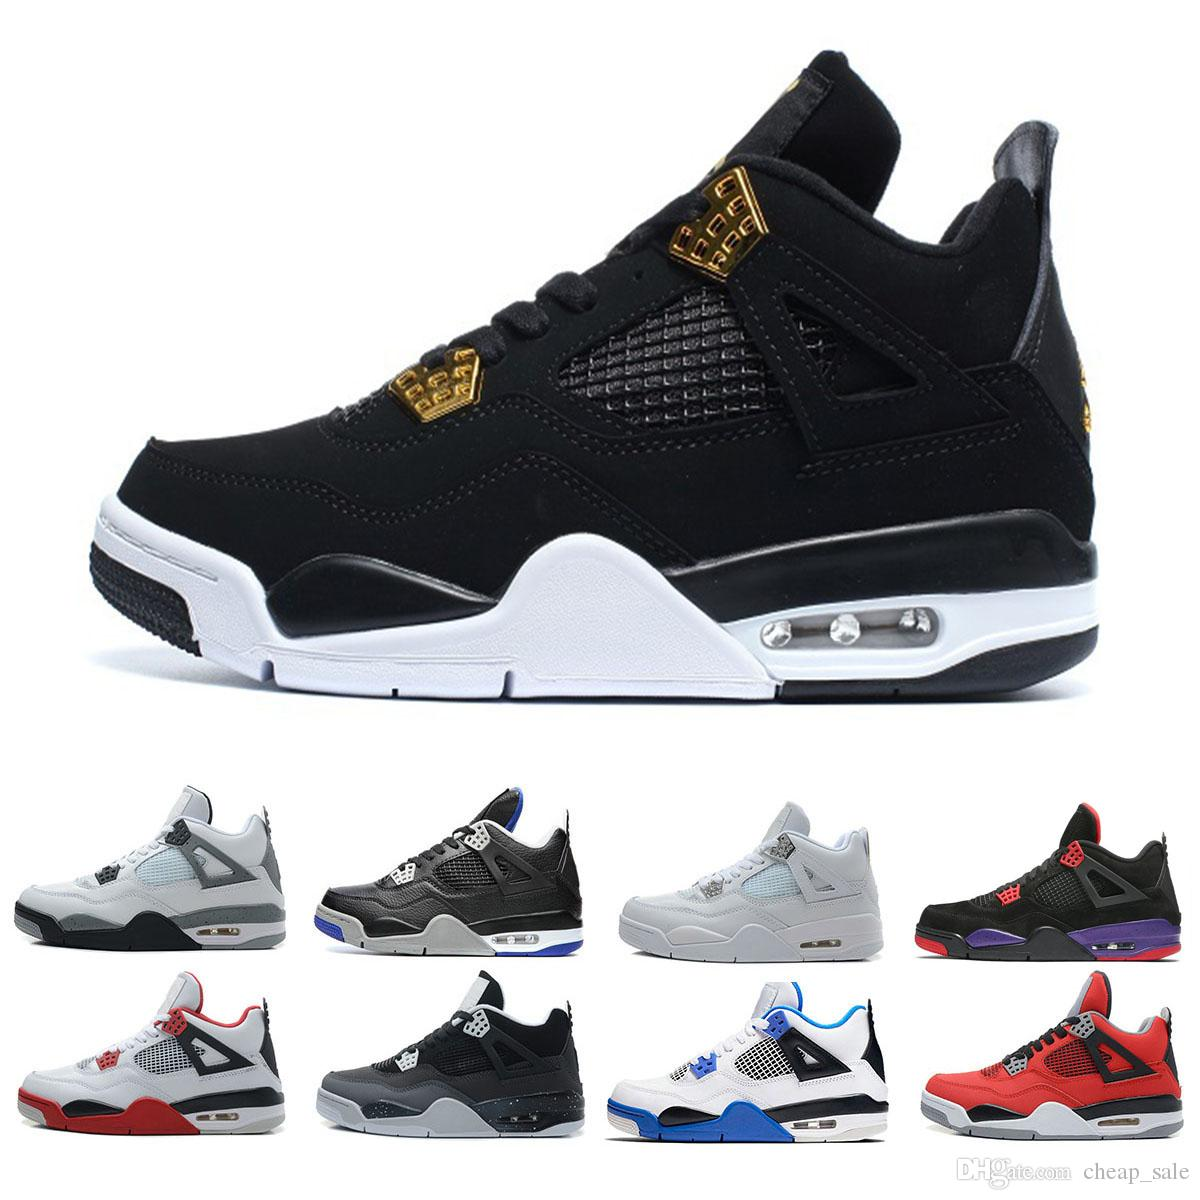 New Color Royalty Mens Basketball Shoes